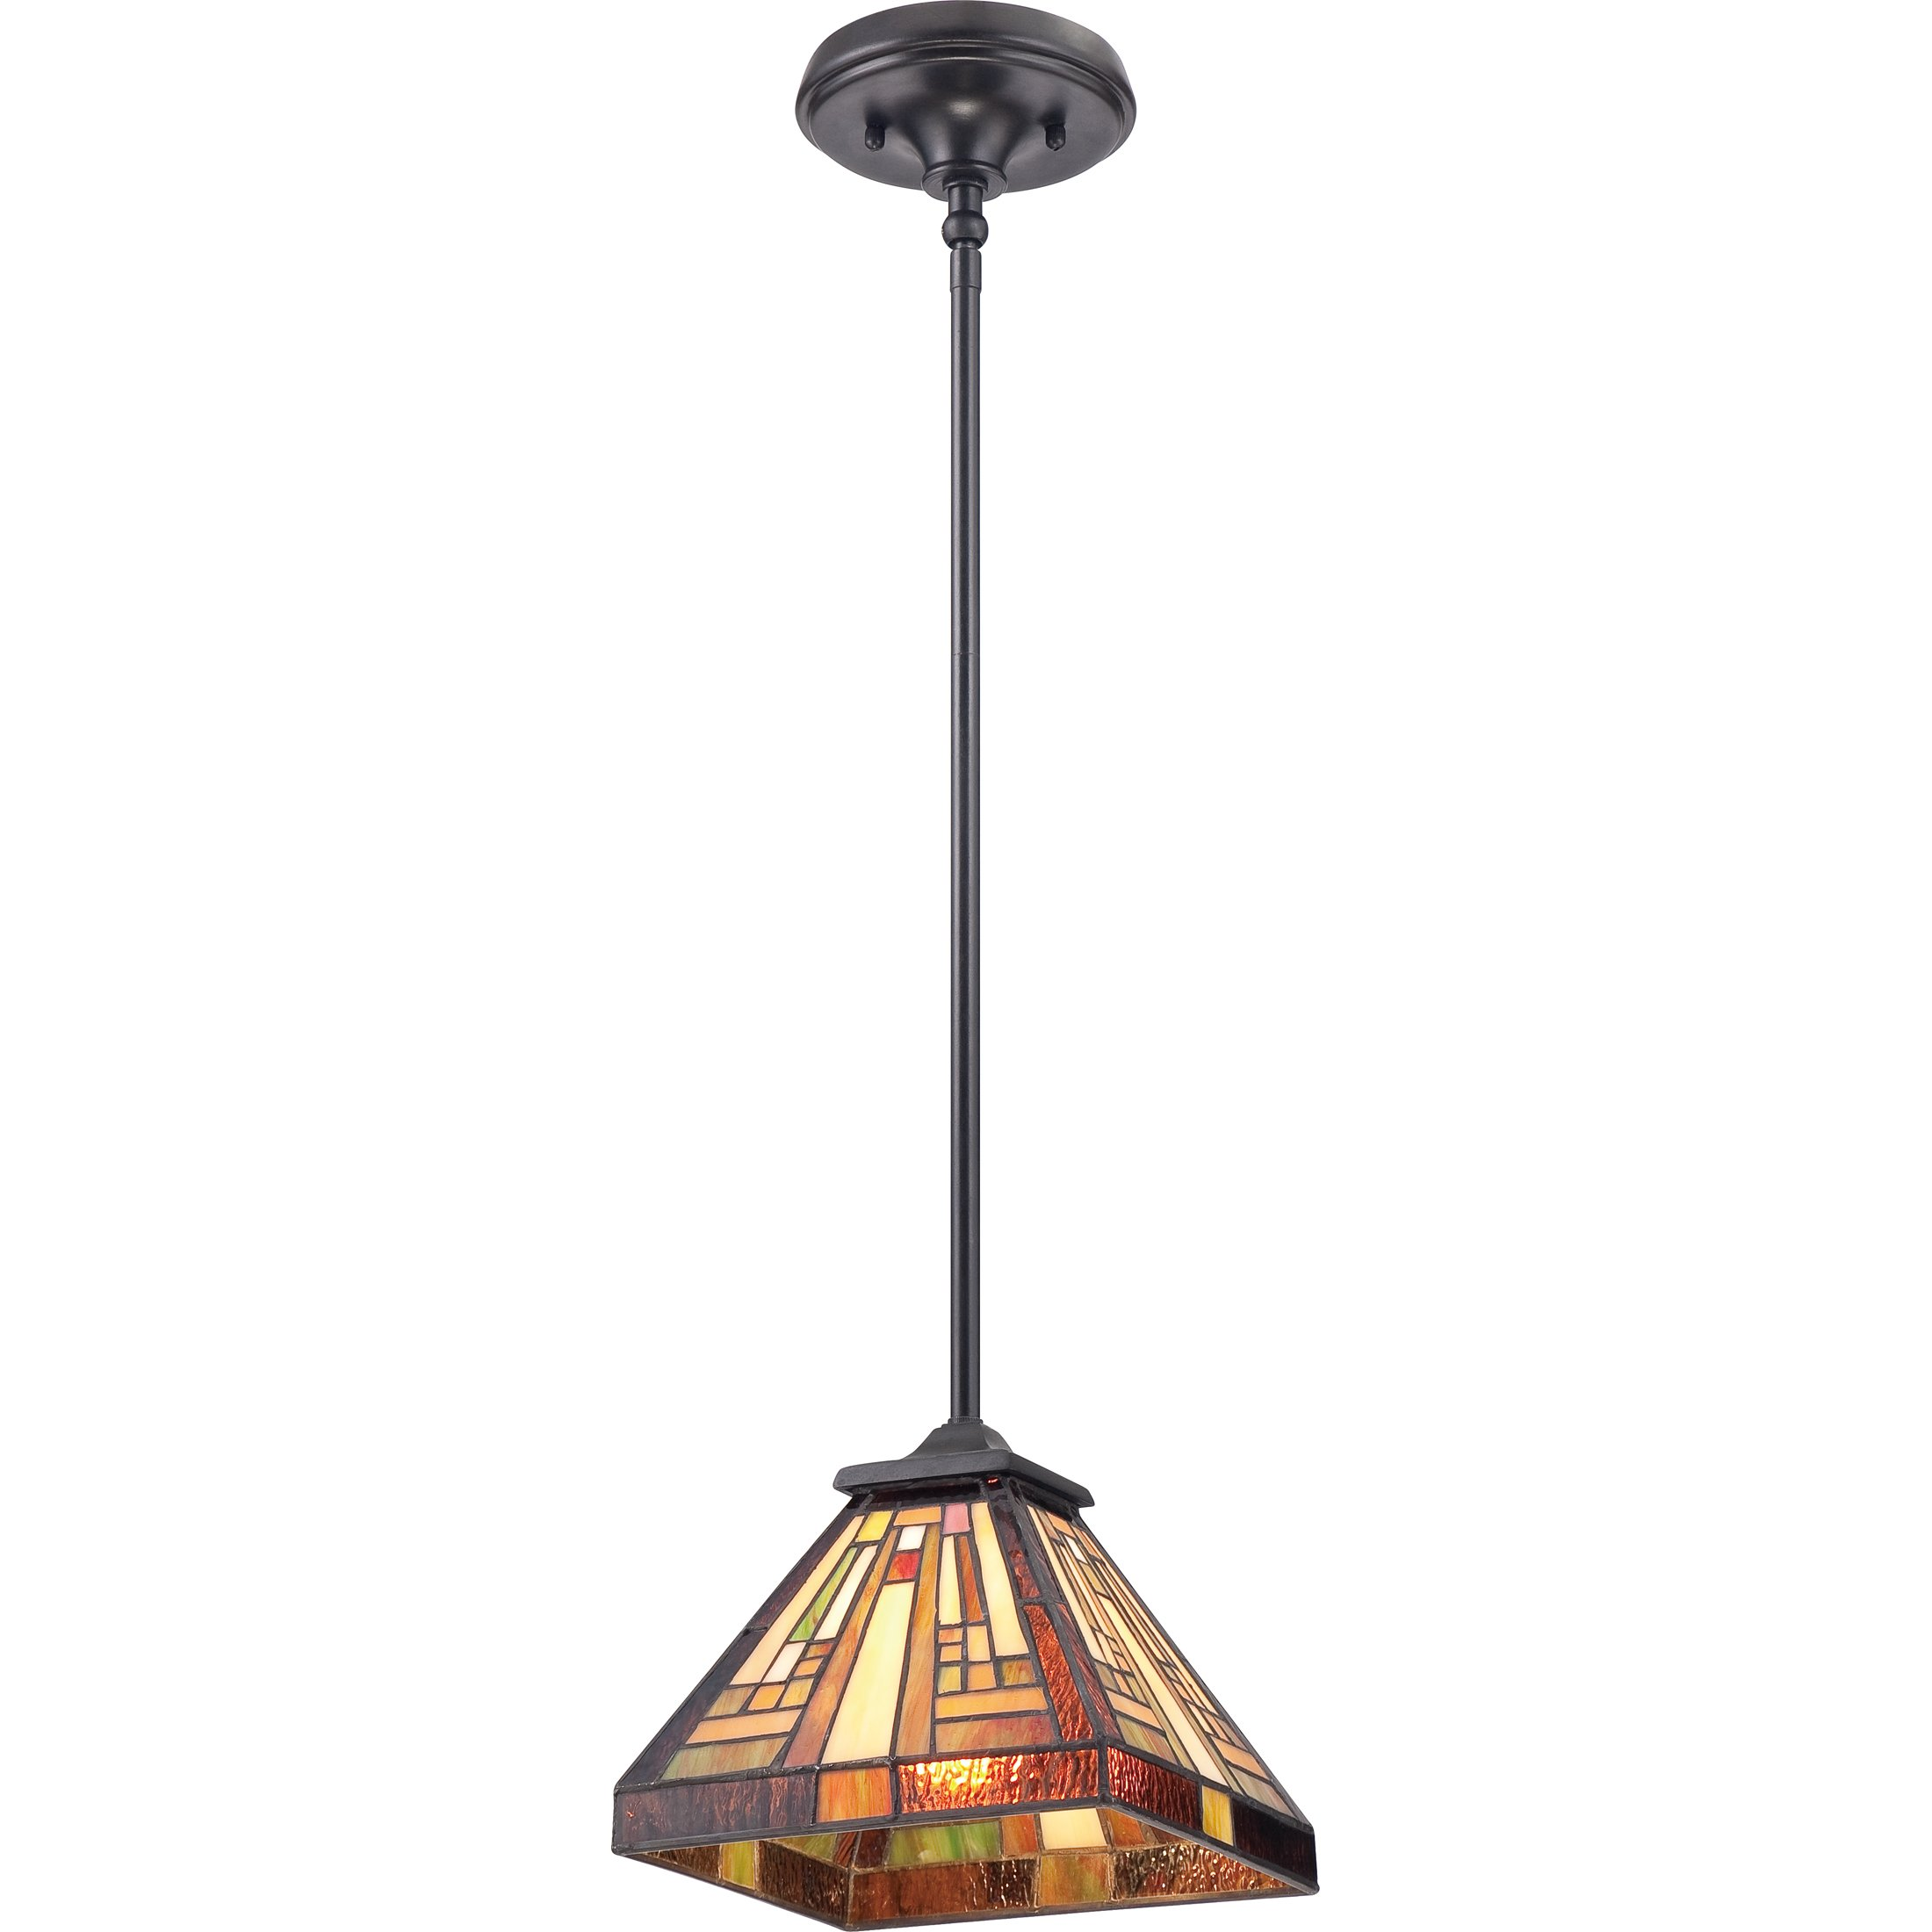 Quoizel TFST1508VB Stephen One Light Vintage Bronze Mini Pendant, 8 inches, Tiffany Glass Shade by Quoizel